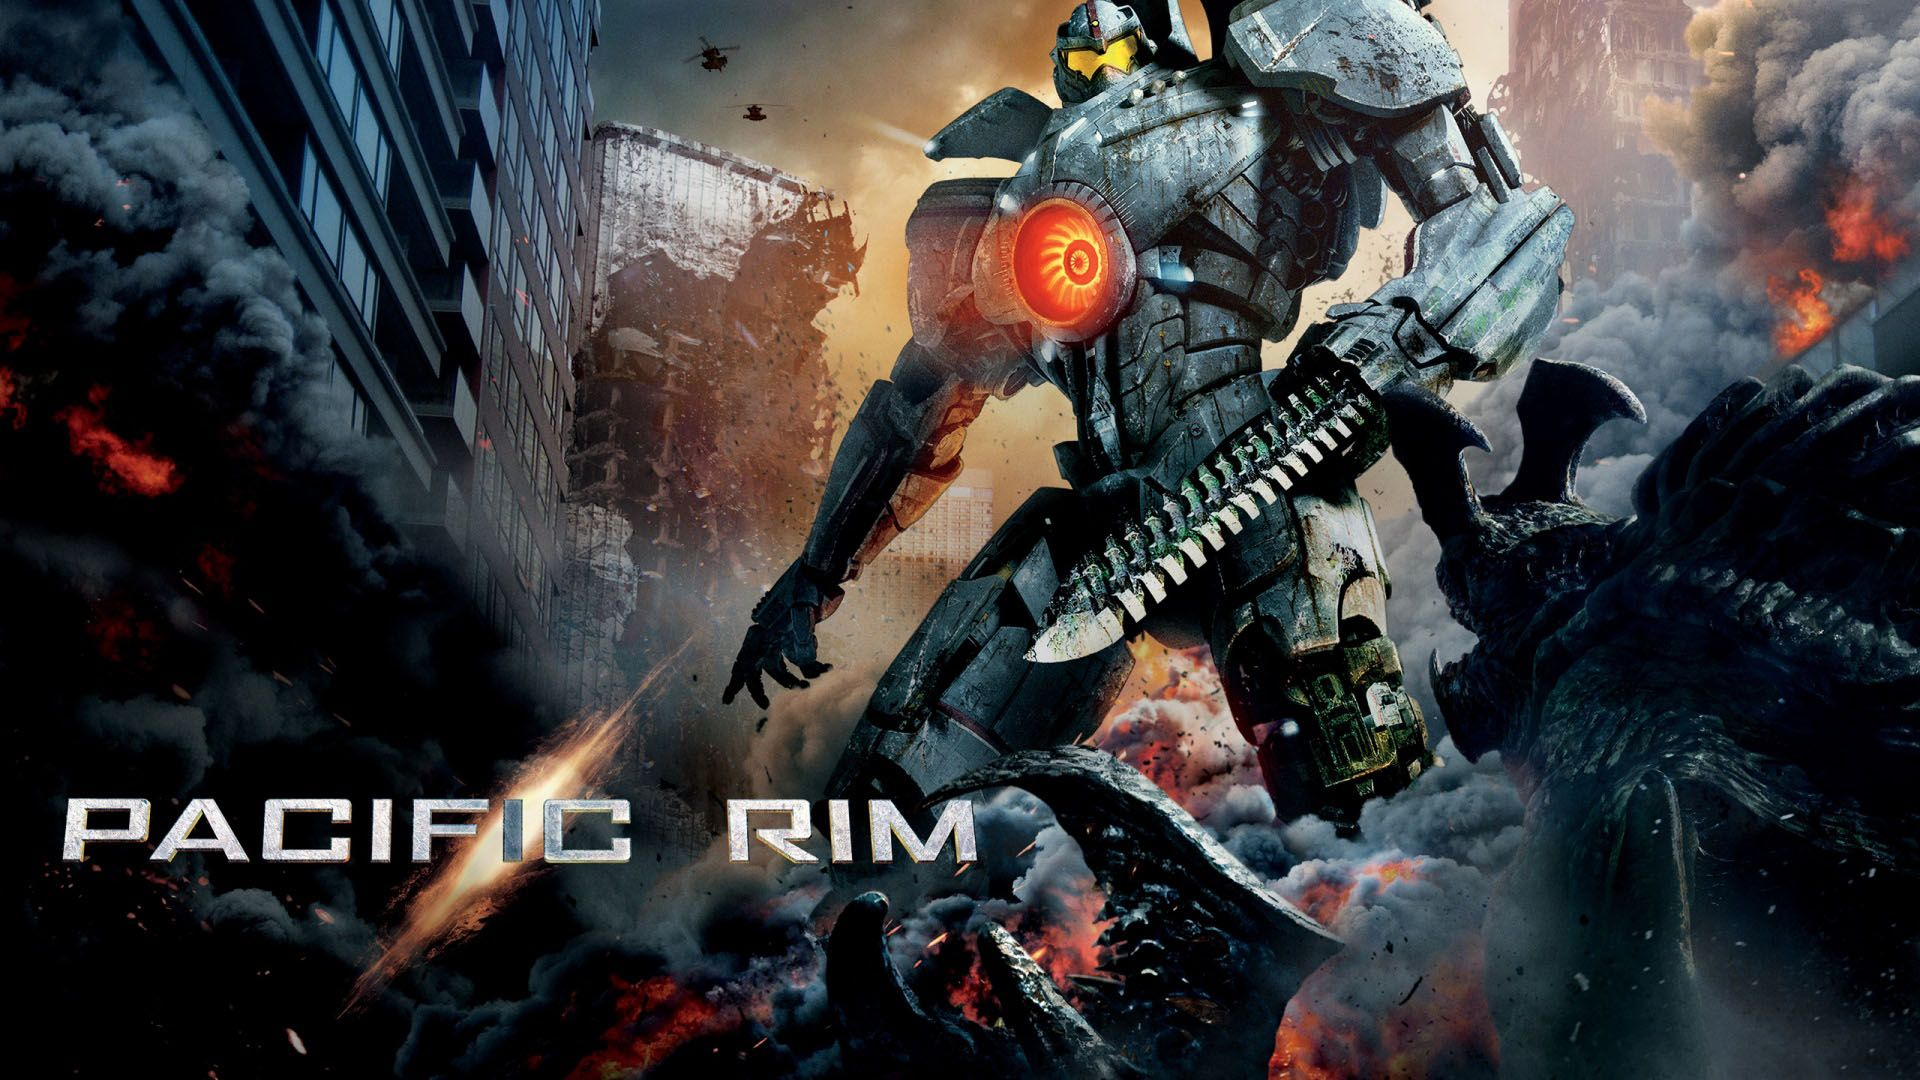 pacific rim kaiju robots - wallpapers pc free download | places to